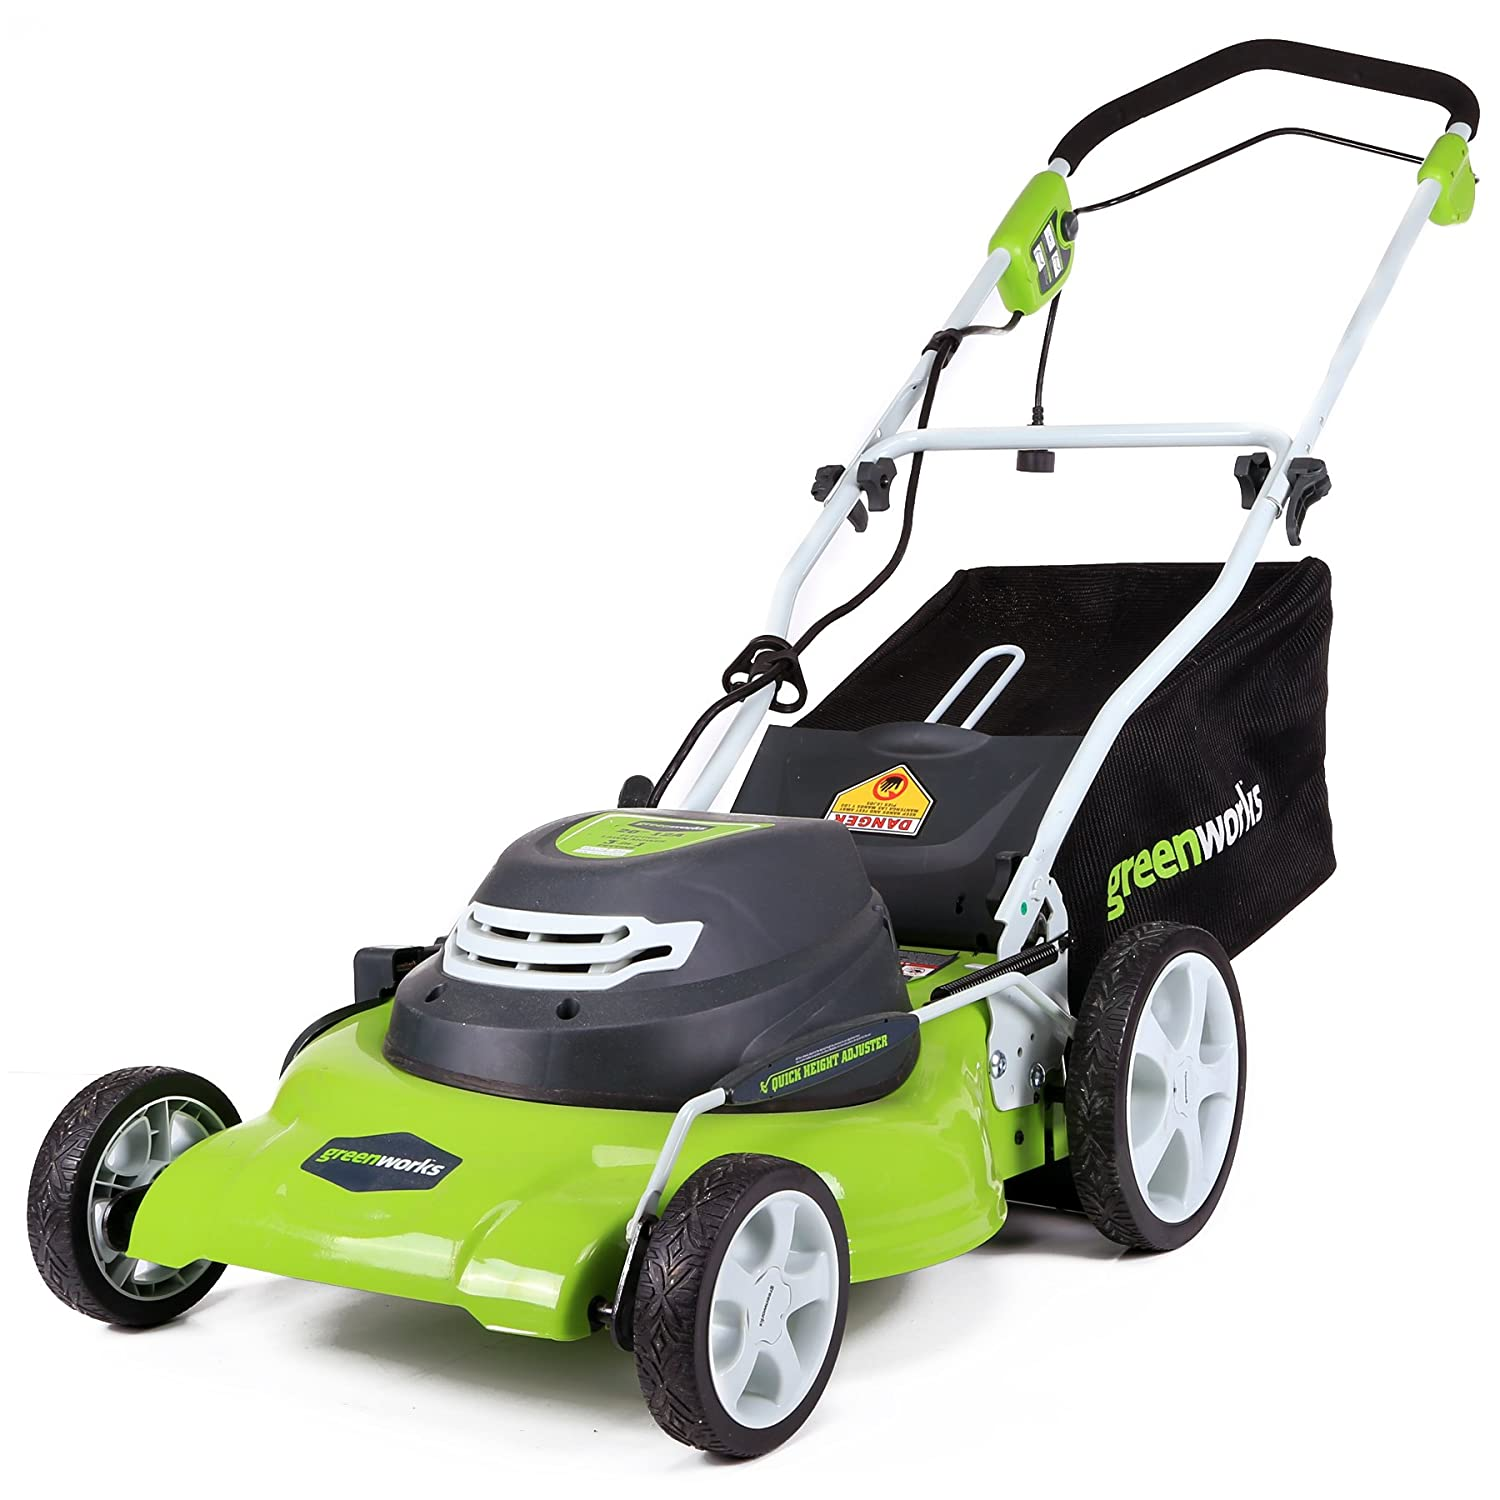 Amazon Greenworks 20 Inch 12 Amp Corded Lawn Mower